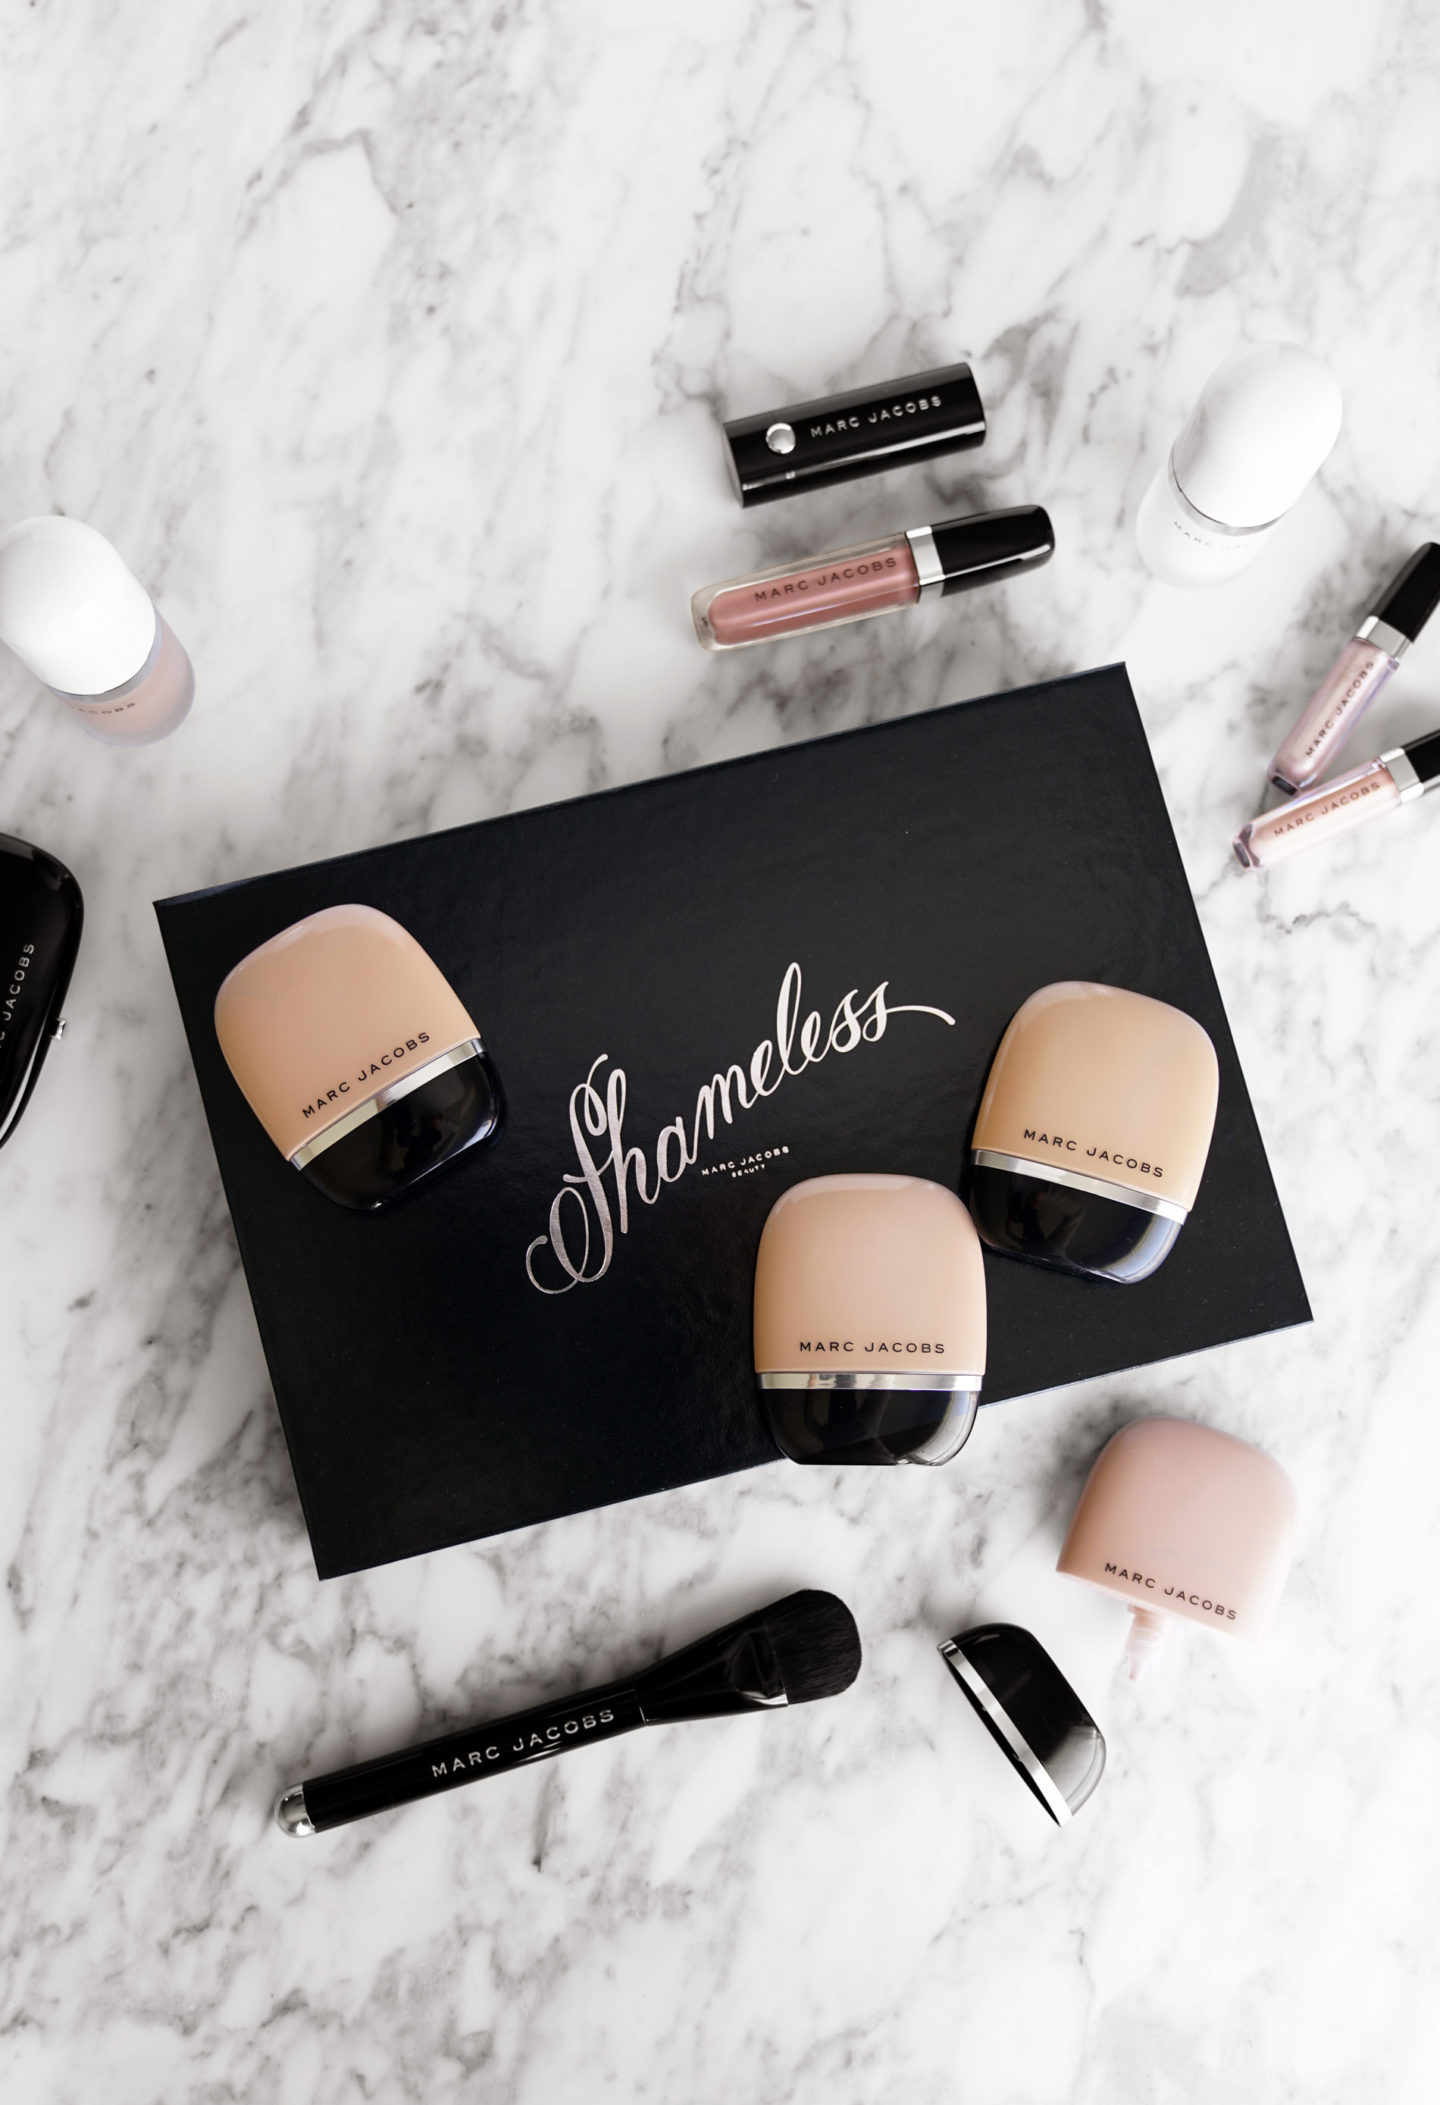 Marc Jacobs Shameless Foundation Review R310, Y320, Y340 and Y360 + The Seamless Brush